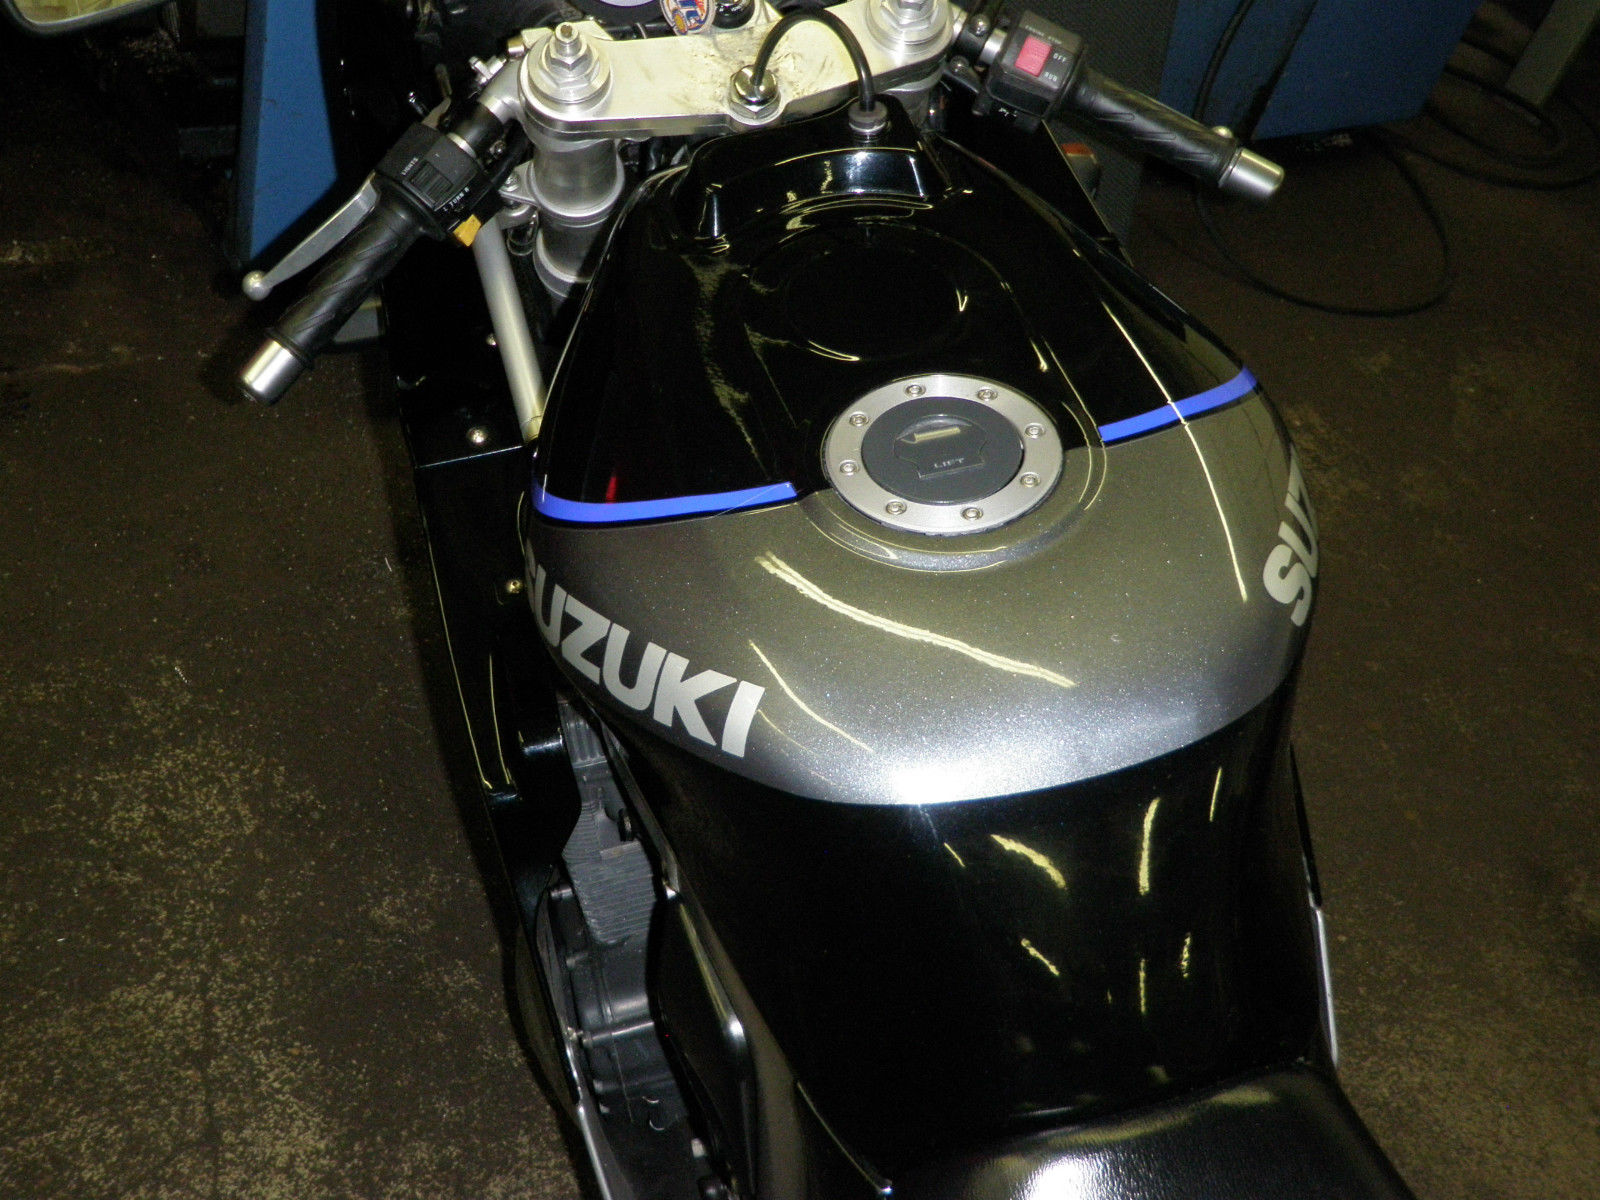 GSX-R 750 Archives - Page 2 of 5 - Rare SportBikes For Sale